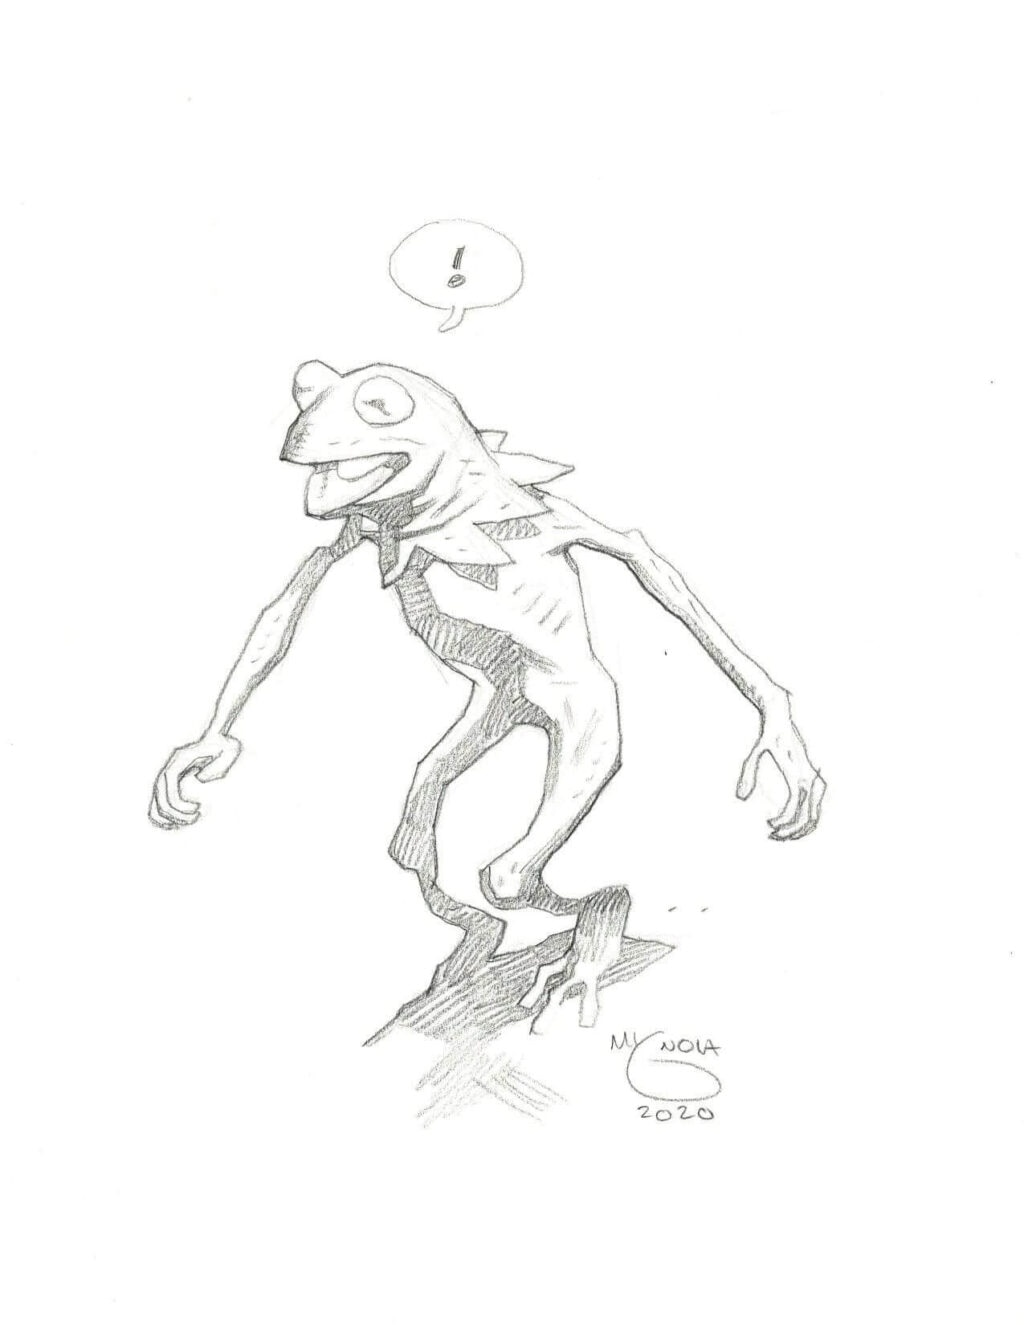 mike mignola kermit 2 1 1024x1325 - Mike Mignola Shares Incredible Quarantine Artwork Of All Your Favourite Characters